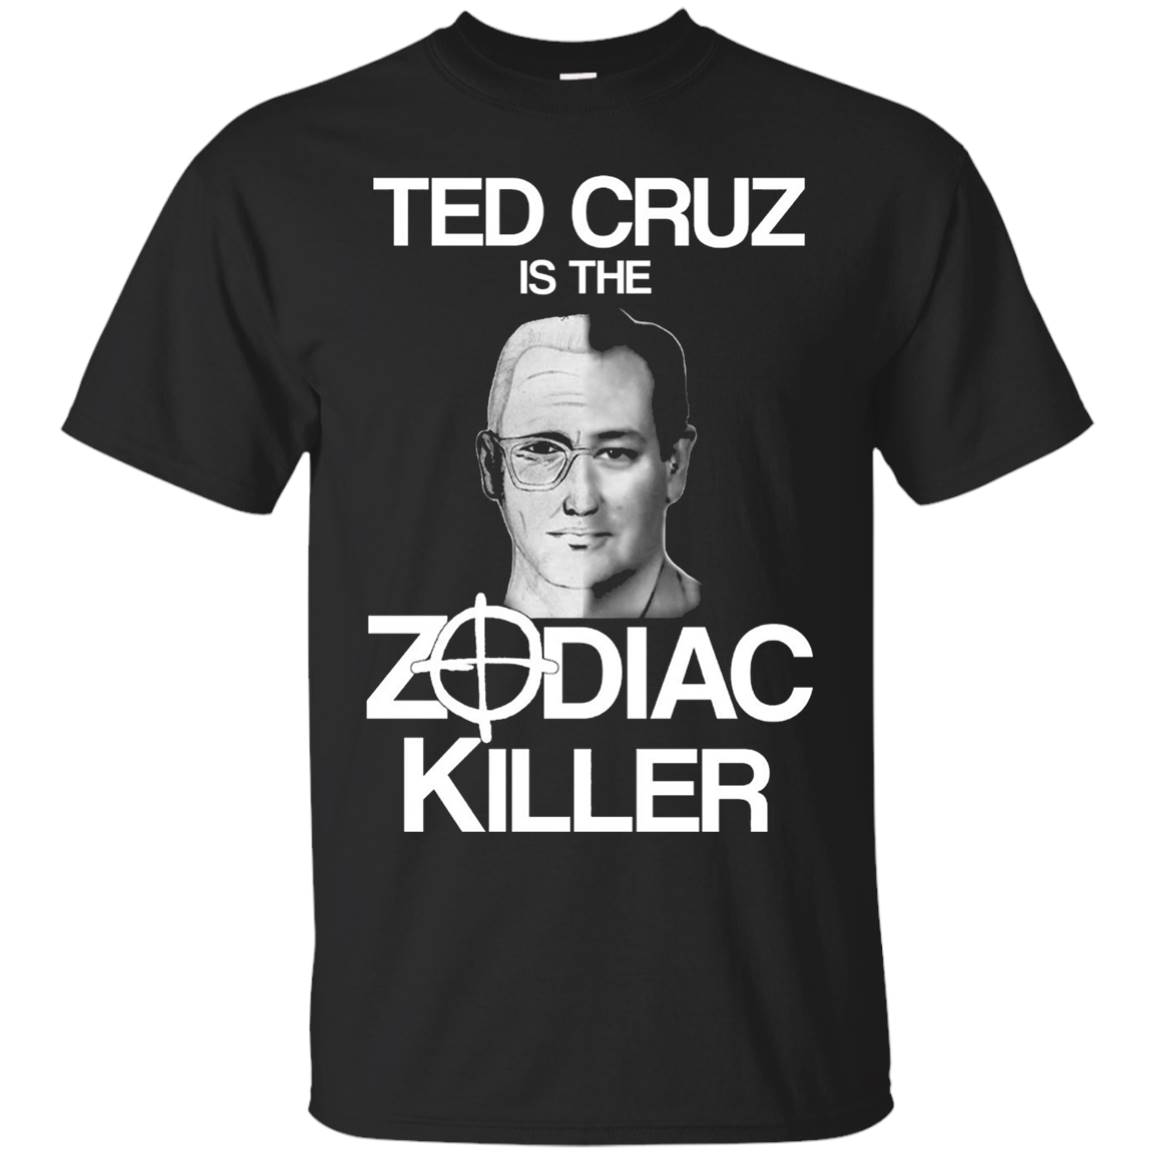 Ted Cruz 2016 Is The Zodiac Killer T-Shirt Side-By-Side T-Shirt